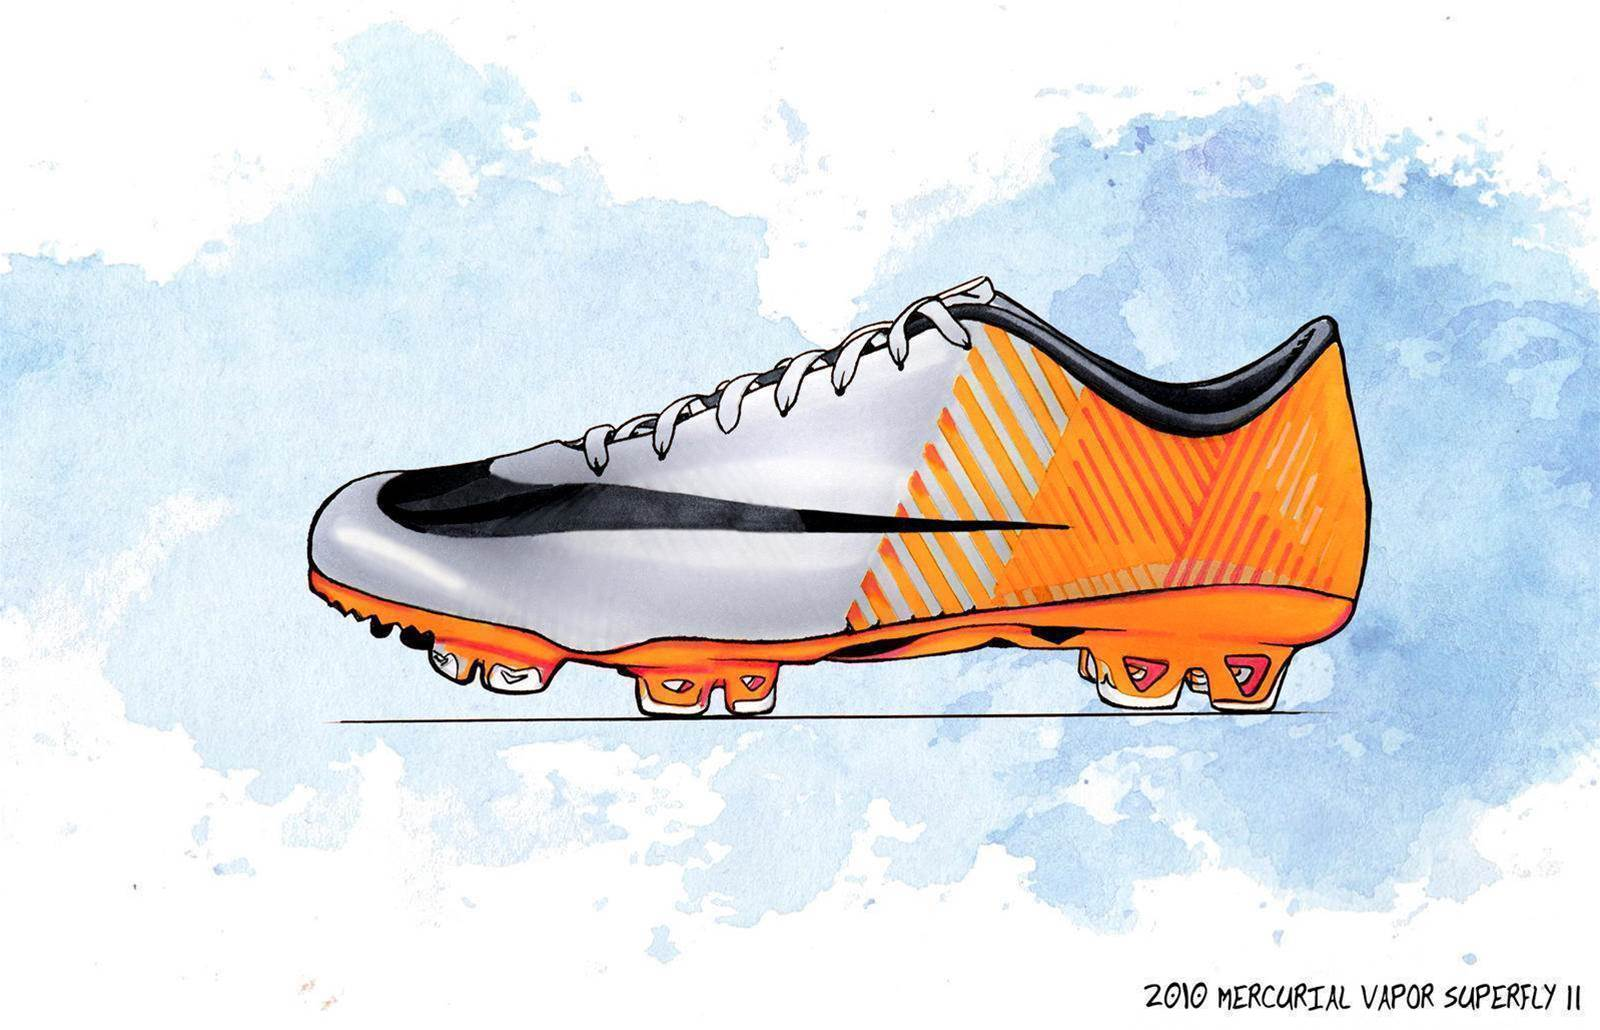 7c9ed56eaa3 Direct input from Cristiano Ronaldo had a enormous impact on how this boot  turned out. It included Nike SENSE technology